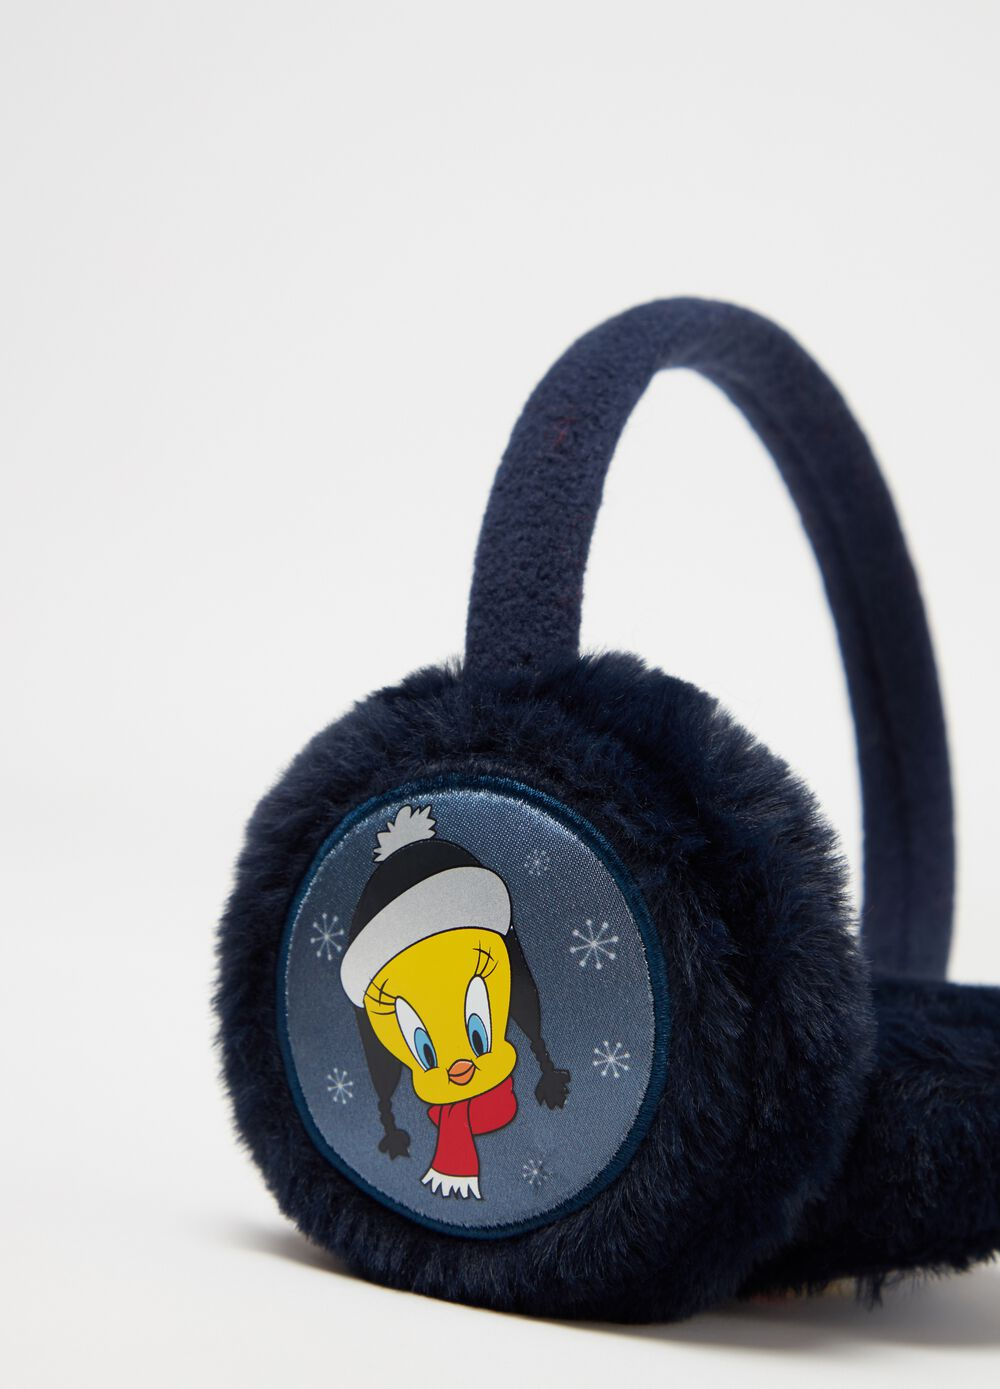 Earmuffs with Warner Bros Tweetie Pie embroidery